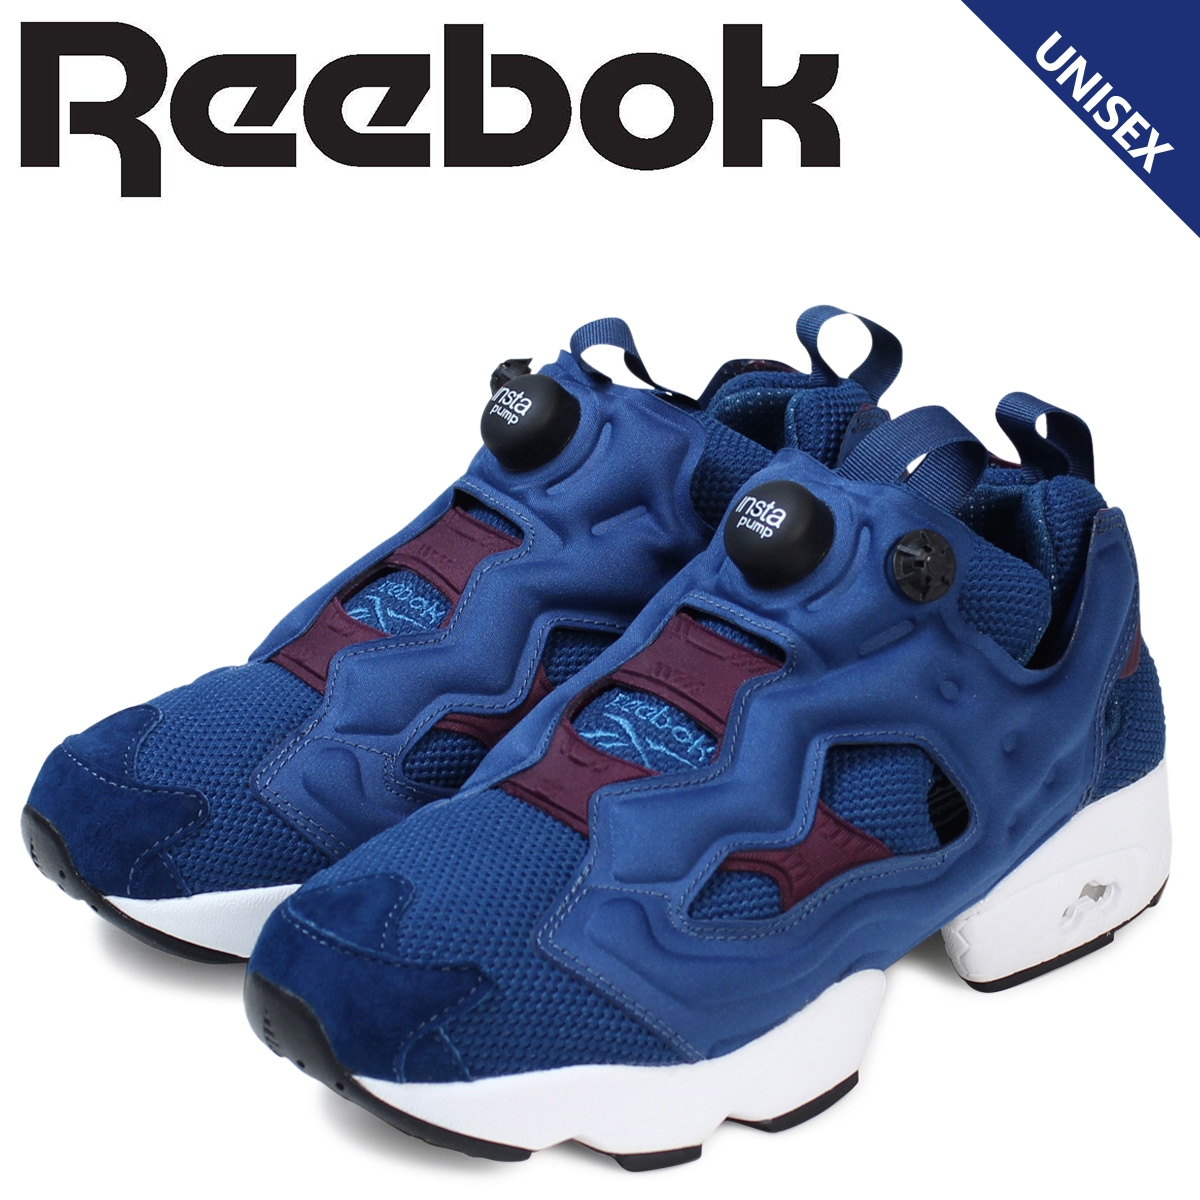 reebok pump fury original cheap   OFF40% The Largest Catalog Discounts e7fb0c2da